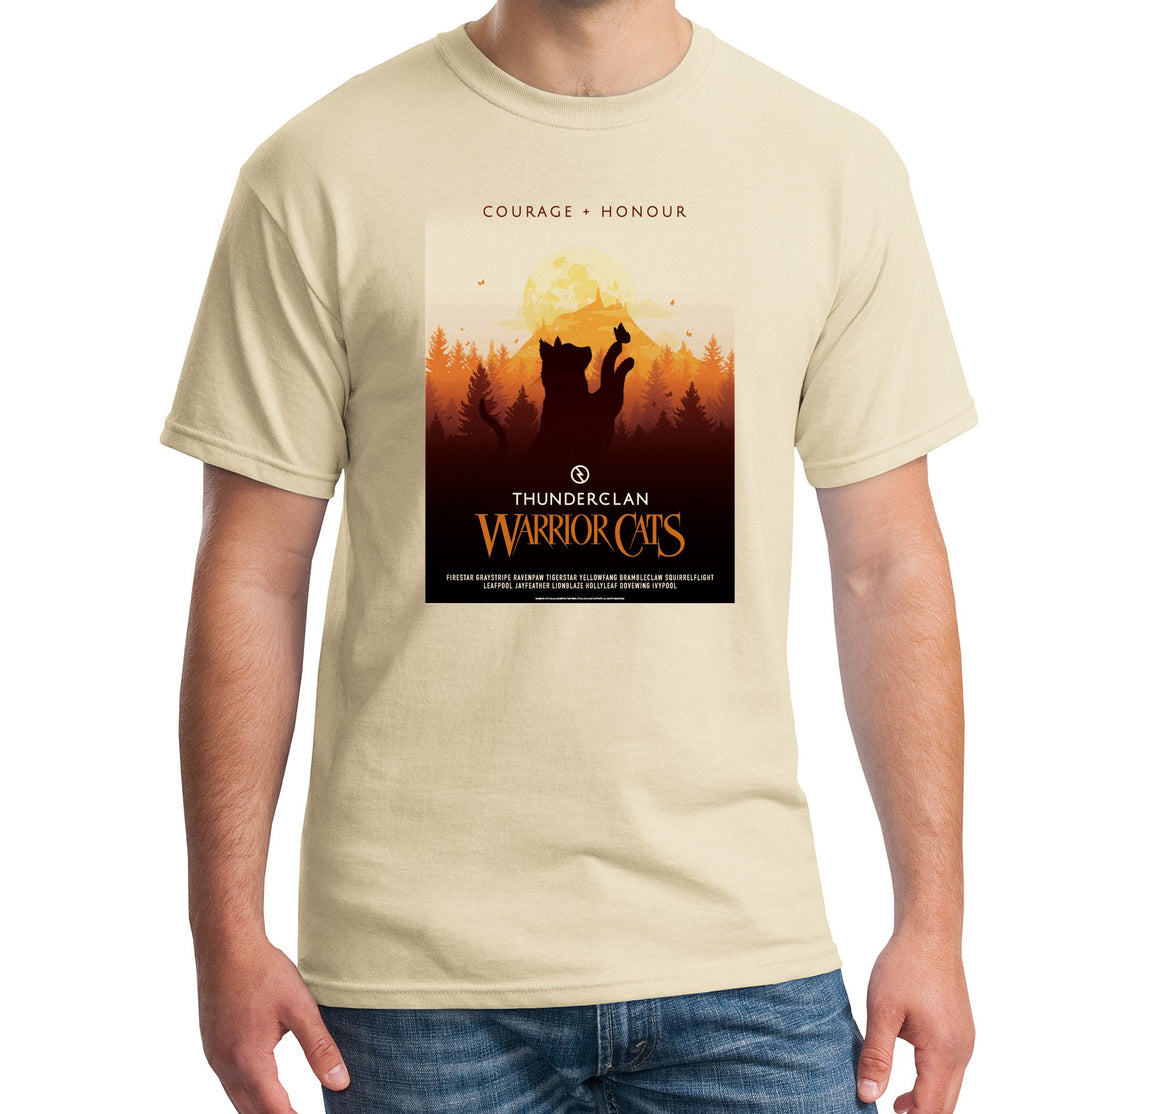 ThunderClan Warrior Cats Courage + Honour Tee